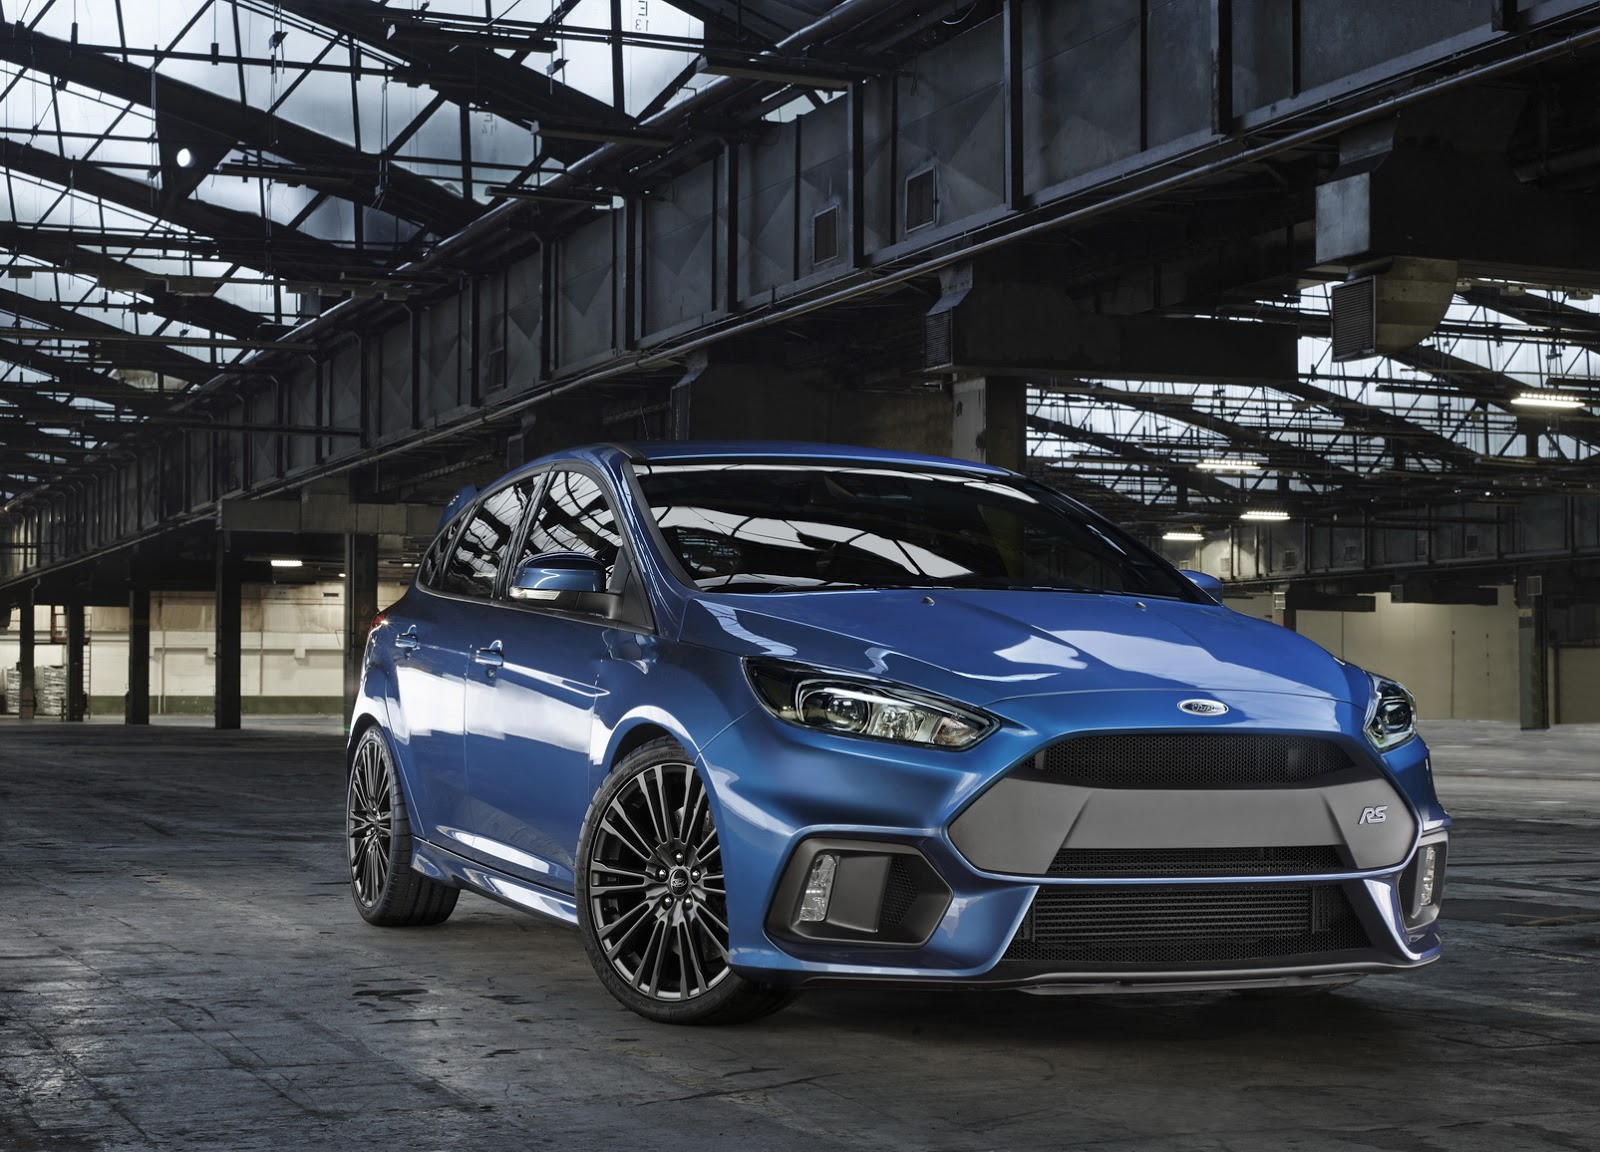 FordFocusRS-official-2